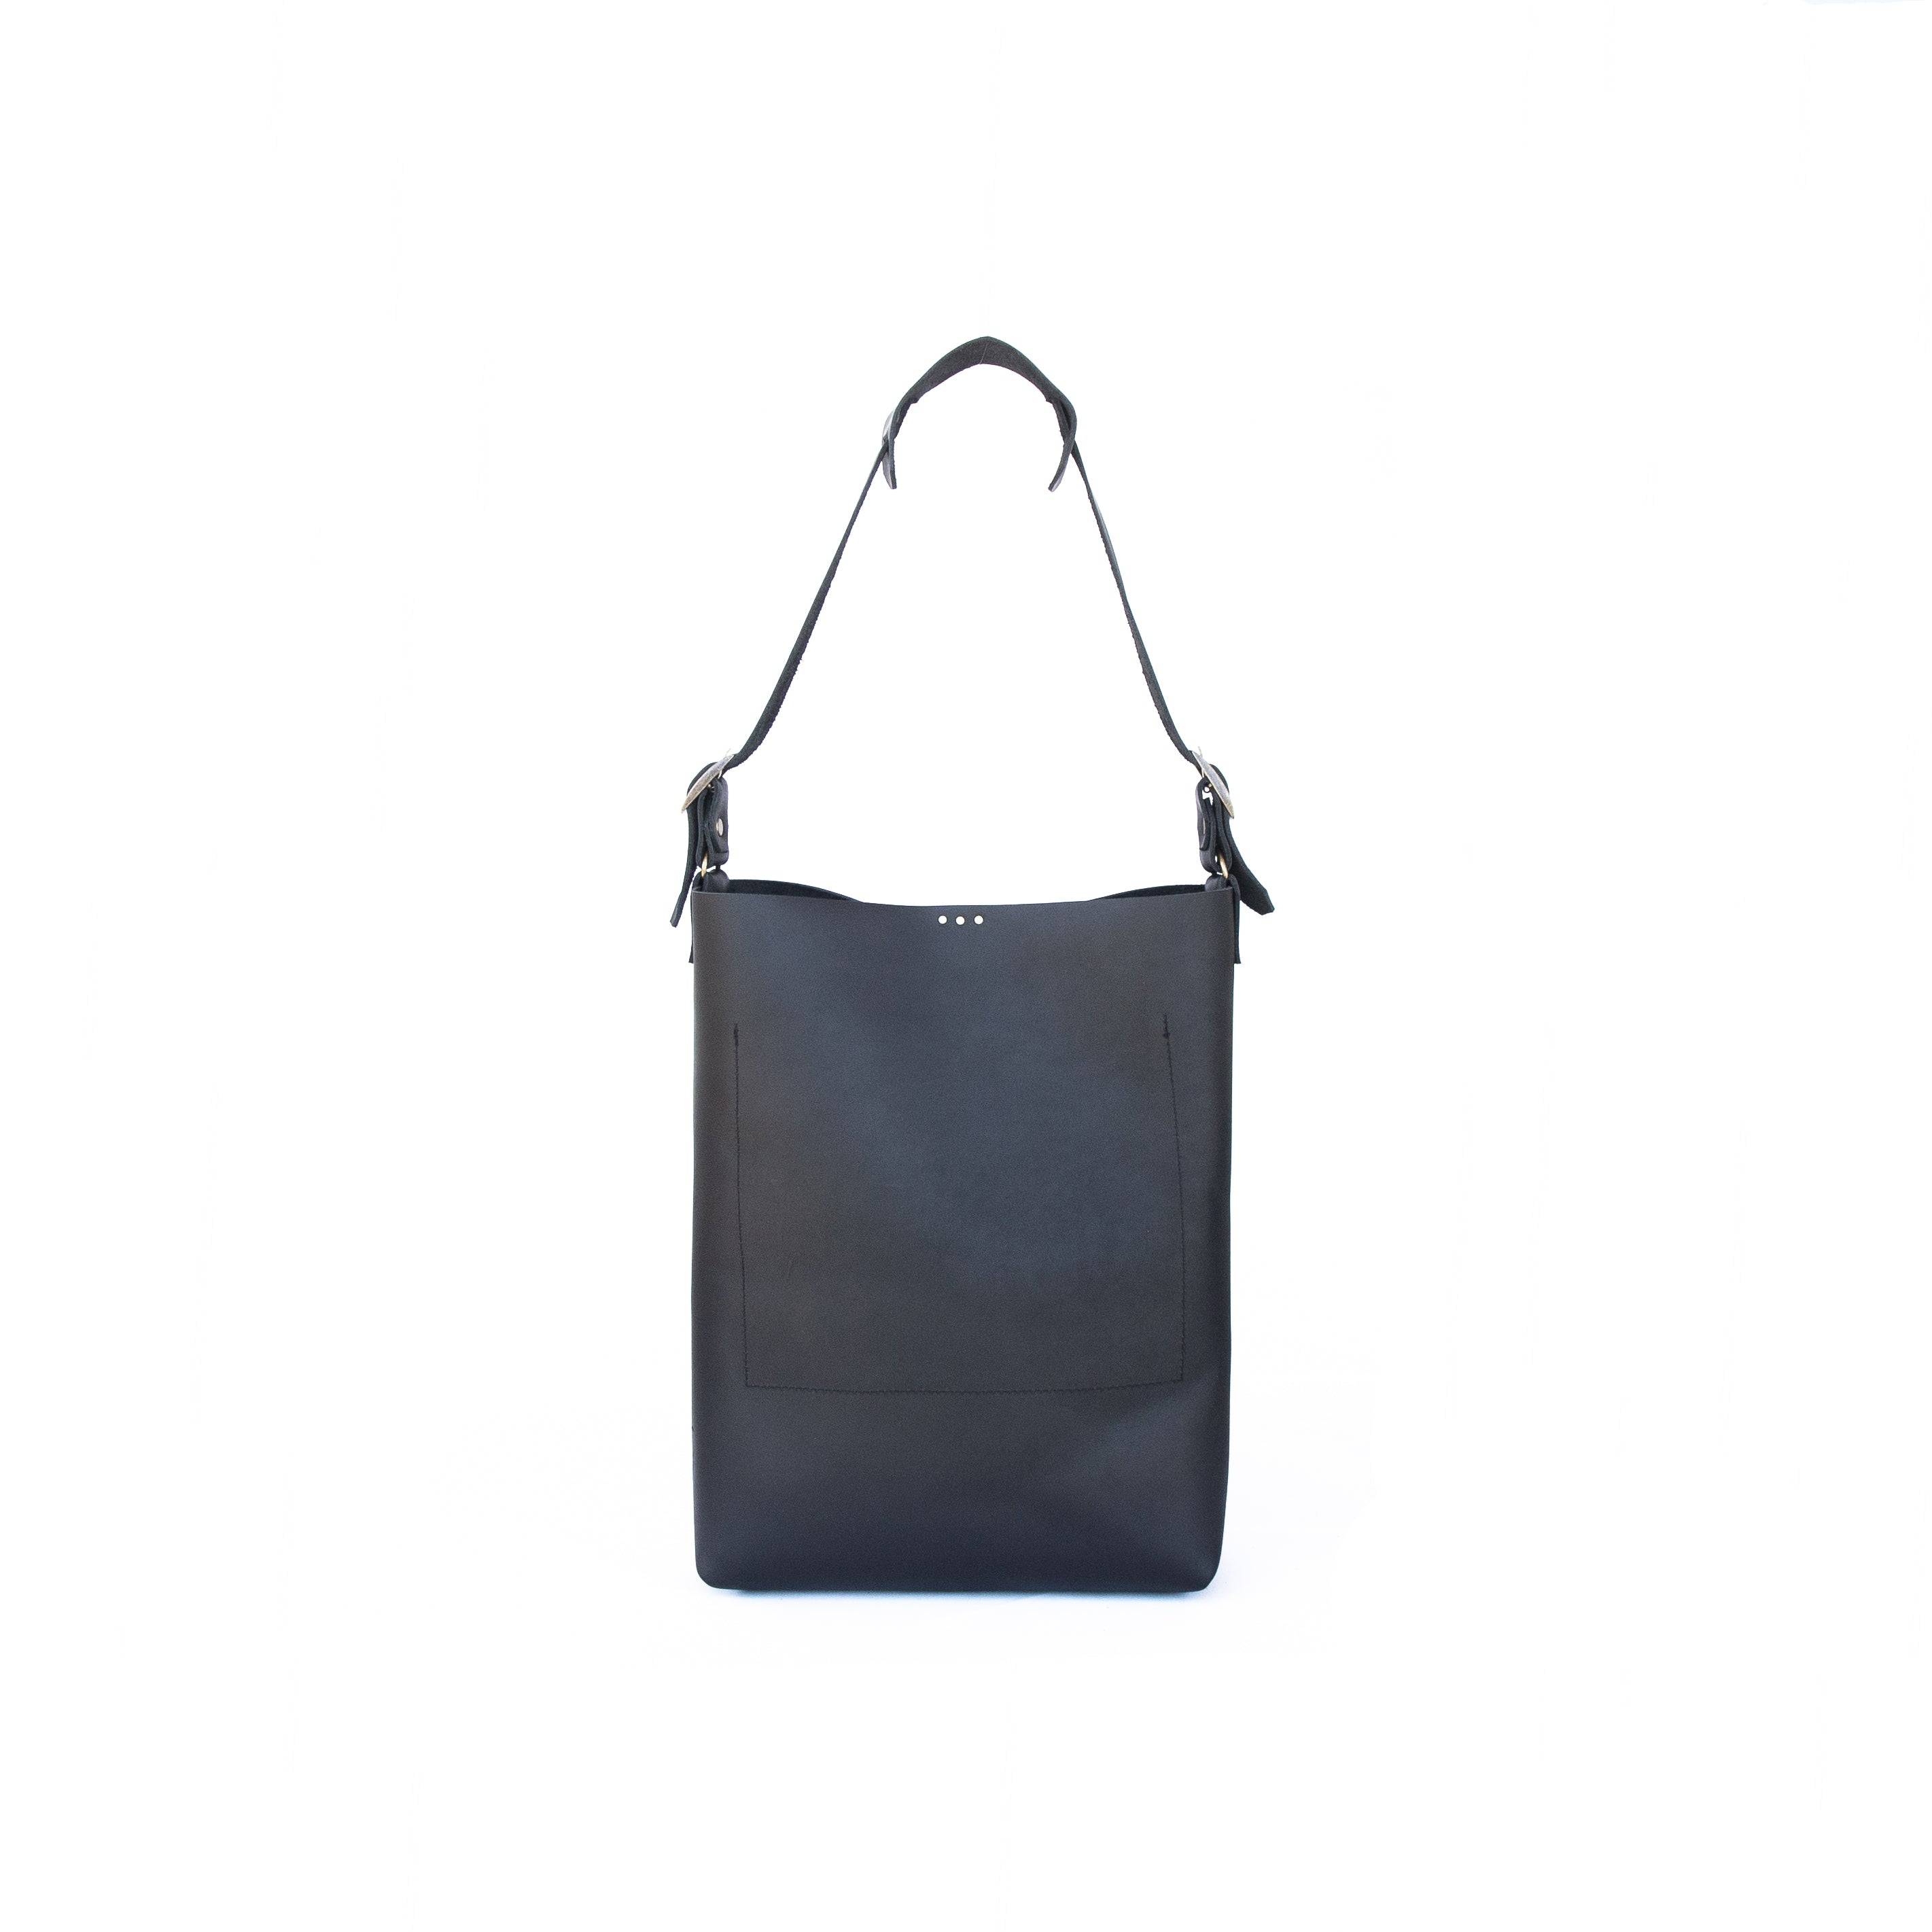 Lady Bag in Black Leather - handcrafted by Market Canvas Leather in Tofino, BC, Canada